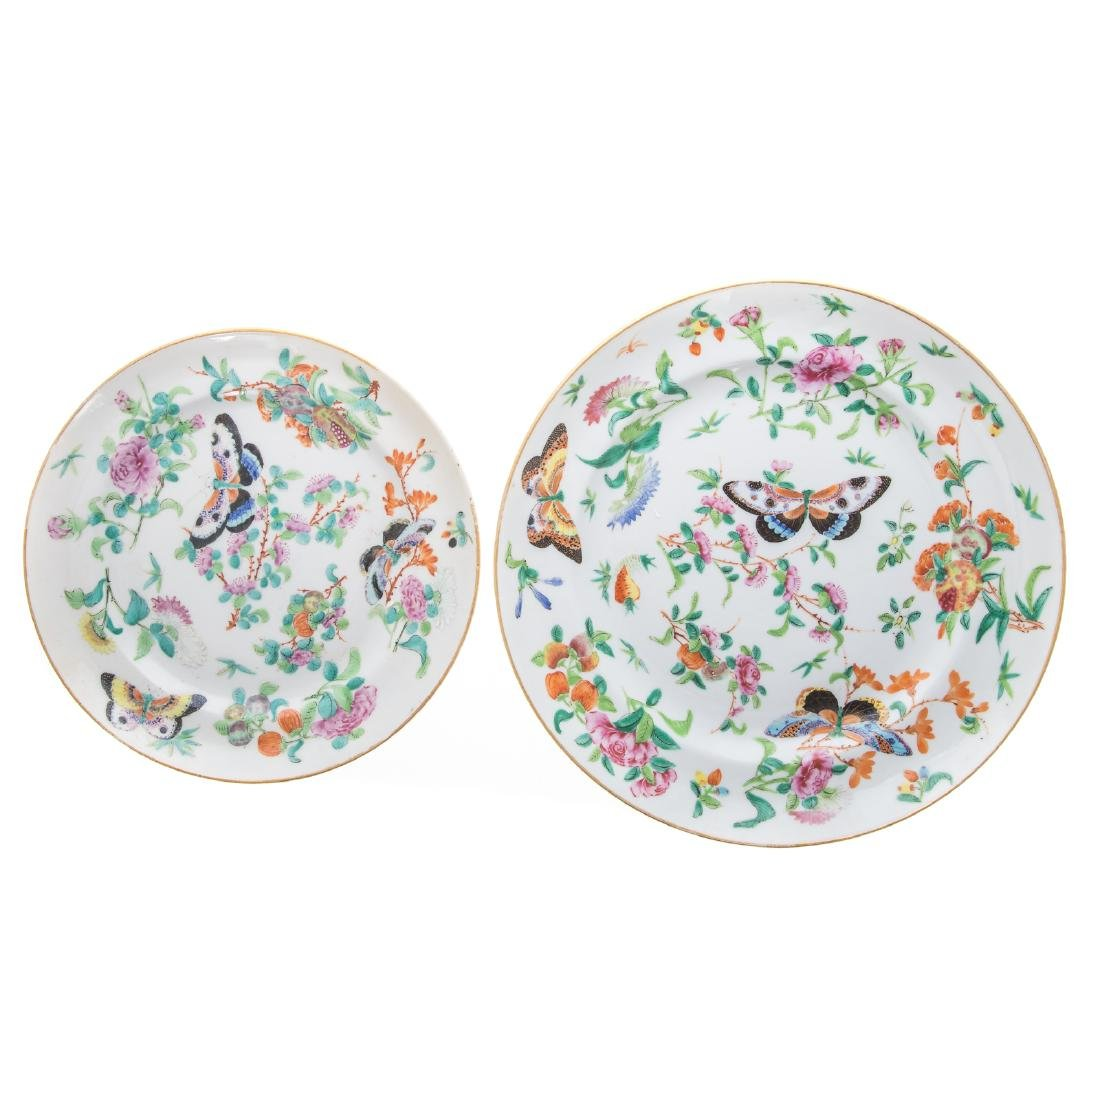 11 Chinese Export Famille Rose plates - 5